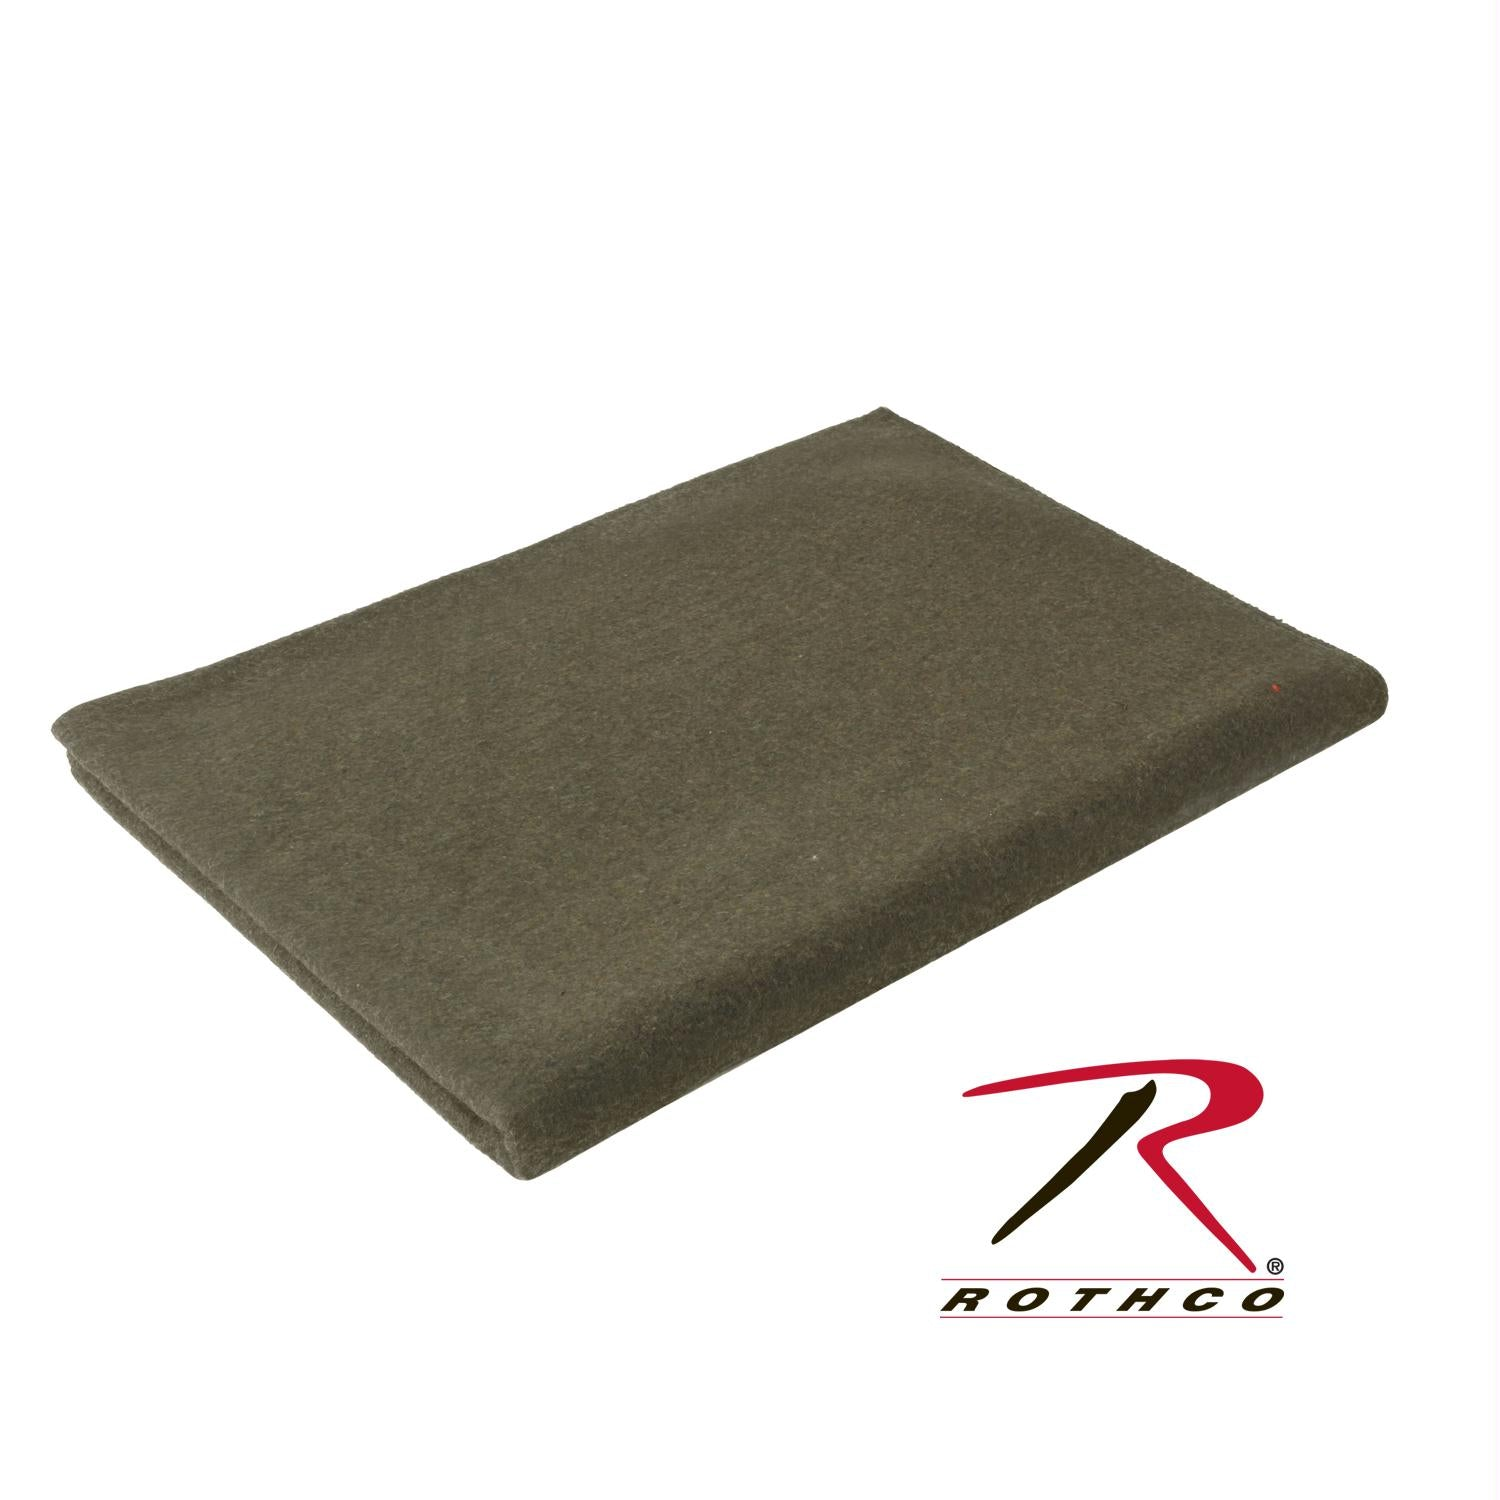 Rothco Wool Blanket - Olive Drab / 66